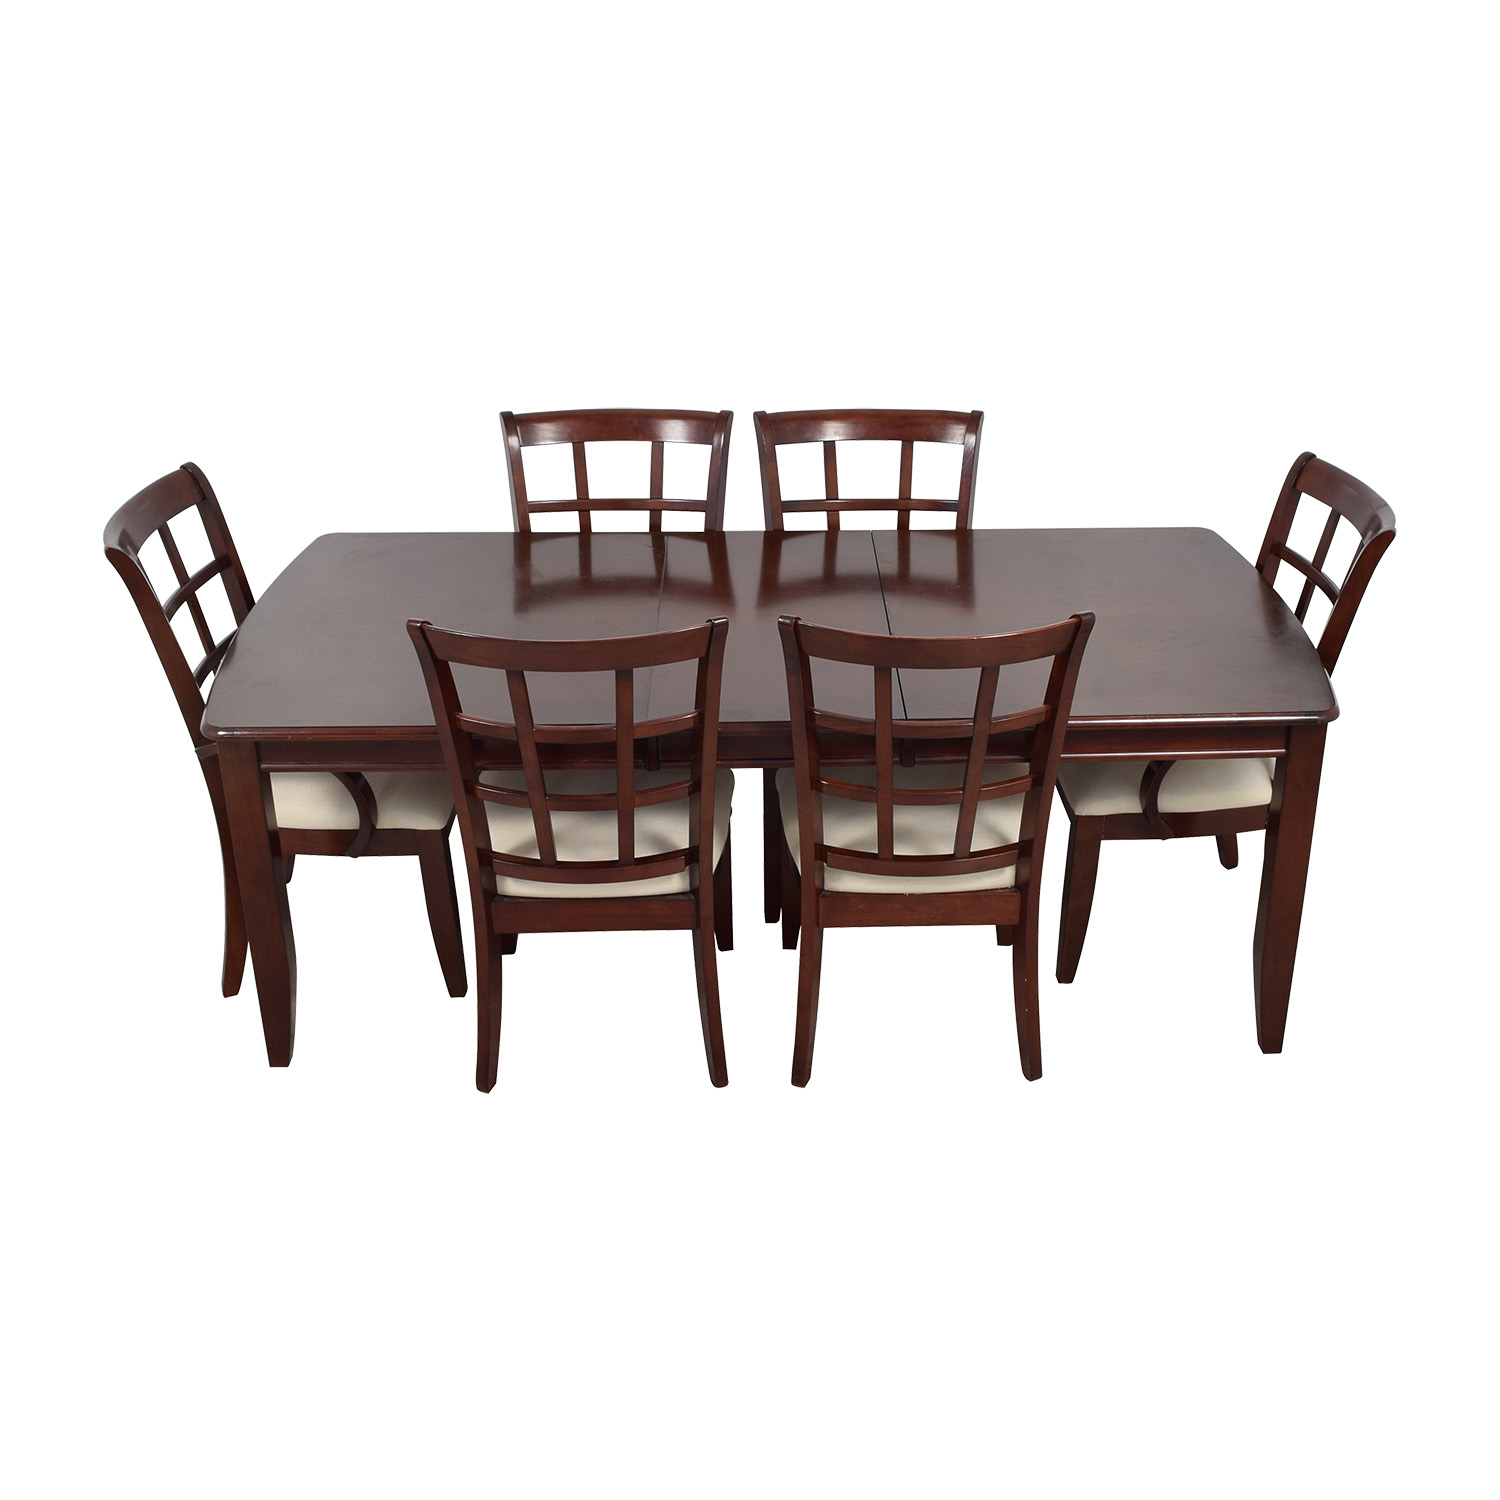 buy Klaussner International Extendable Leaf Wood Dining Set Klaussner International Tables